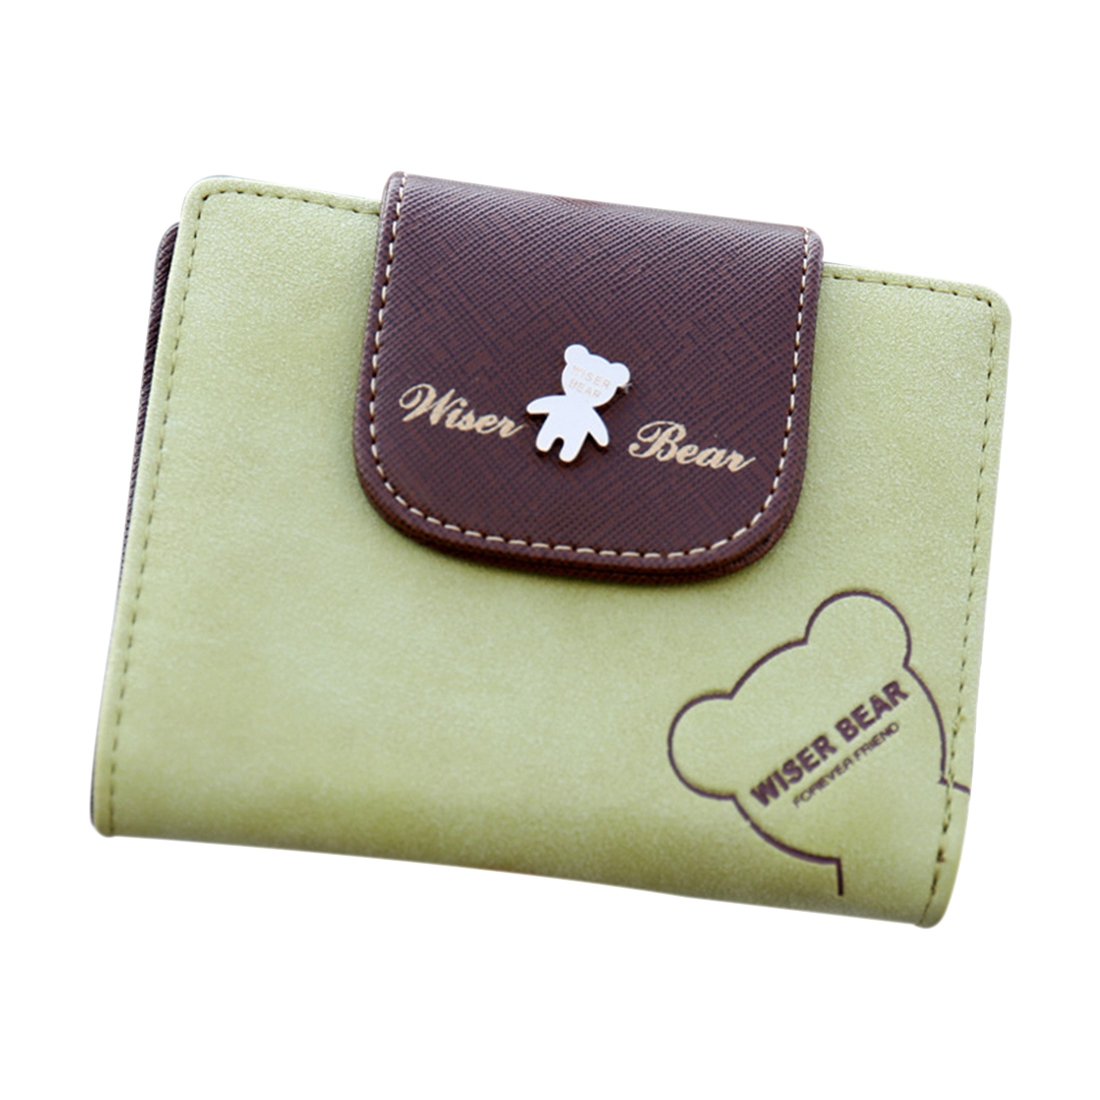 VSEN 2X Fashion Lovely Bear Wallet Female Leather Small Change Clasp Purse Money Card Coin Holder Girls Women Purses(Green)